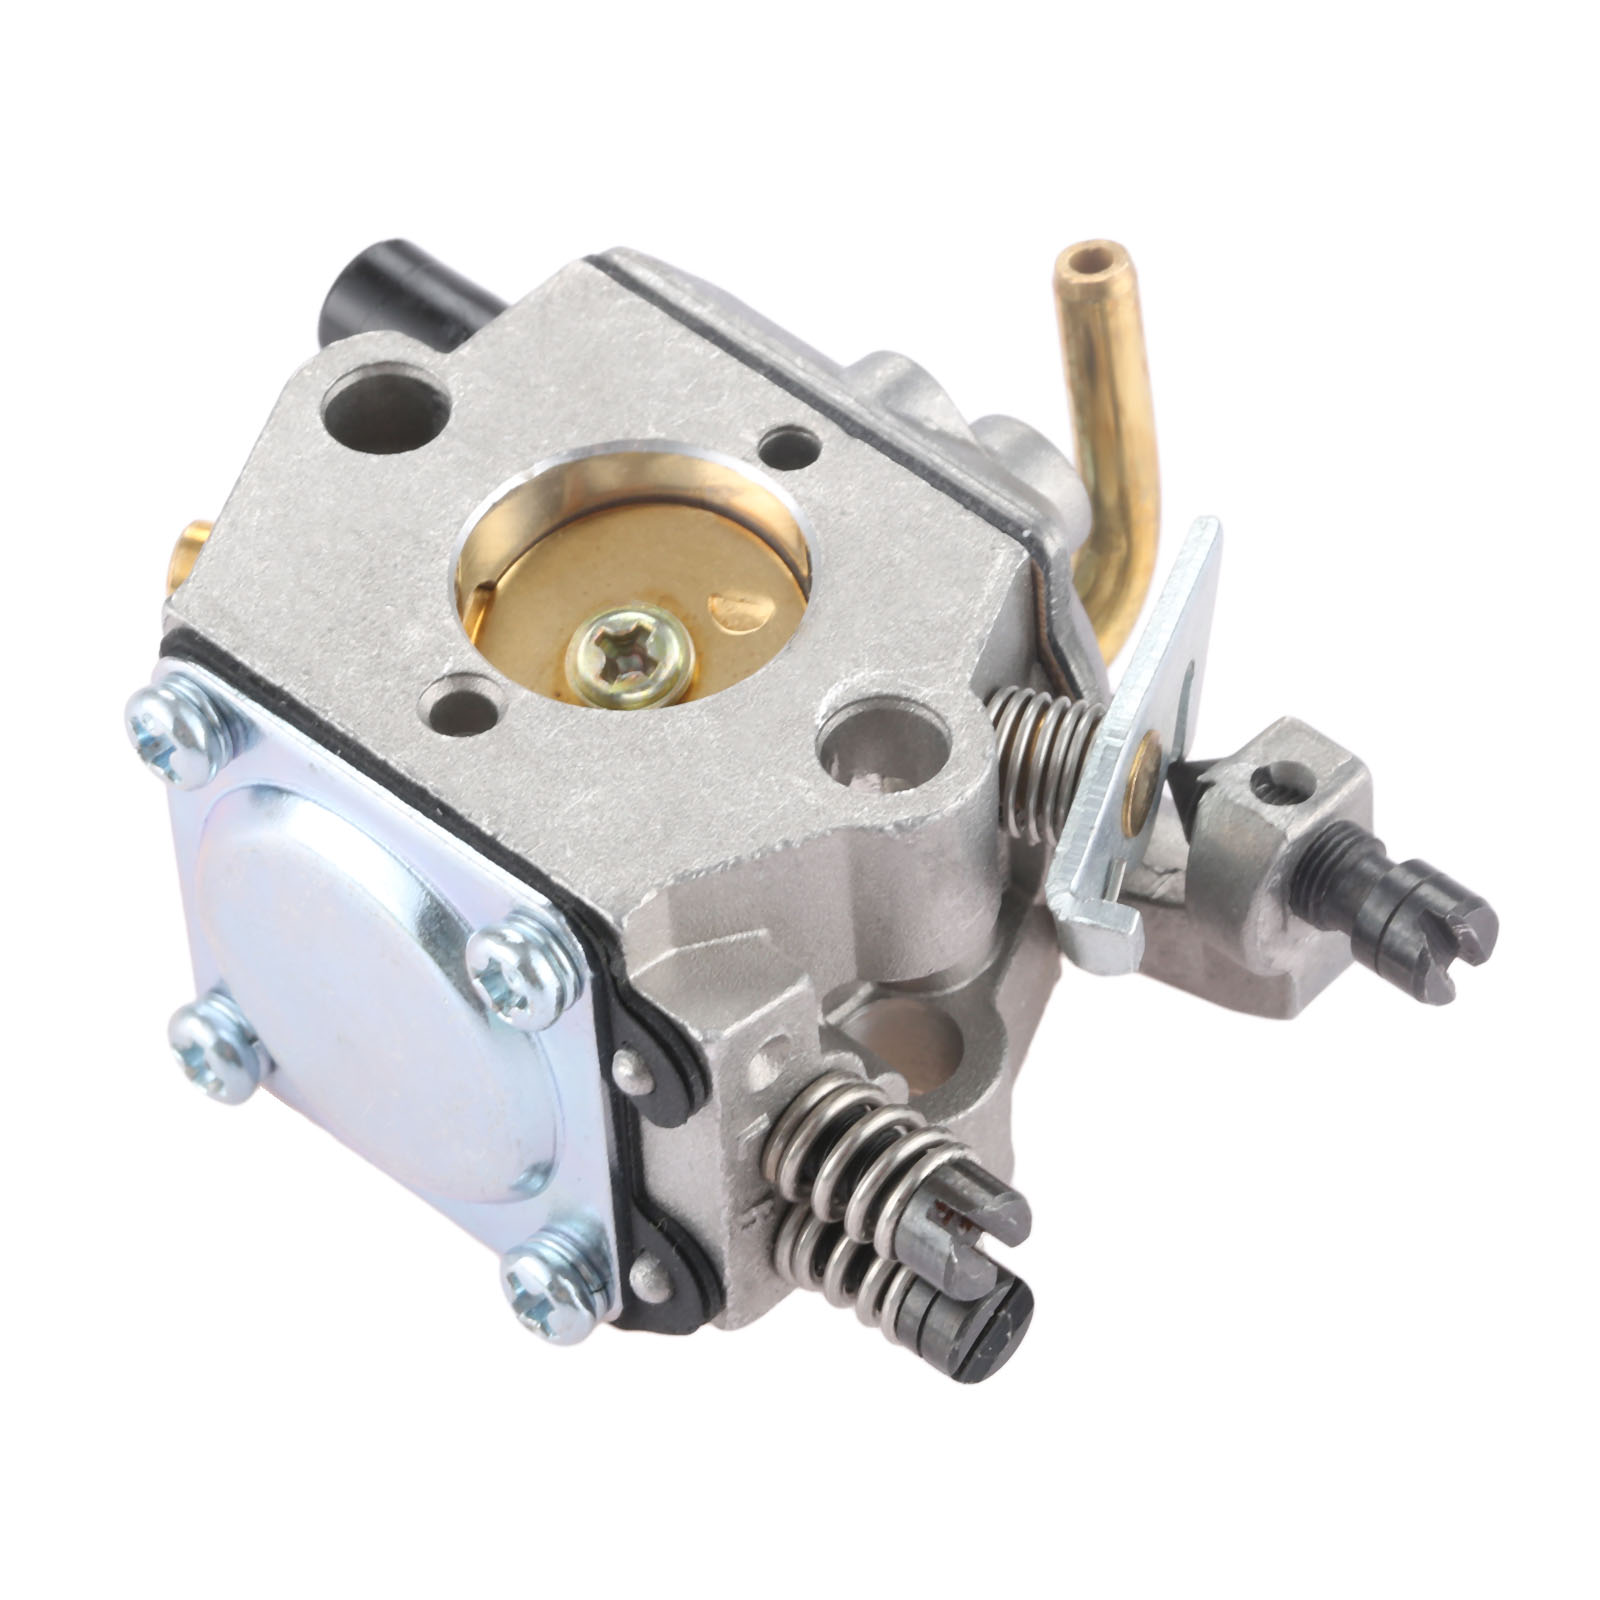 Image 2 - DRELD Carburetor For Stihl 024 026 MS240 MS260 024AV 024S Chainsaw 1121 120 0611 Replace OEM Walbro WT 194 WT 194 1 wt 22 Carb-in Chainsaws from Tools